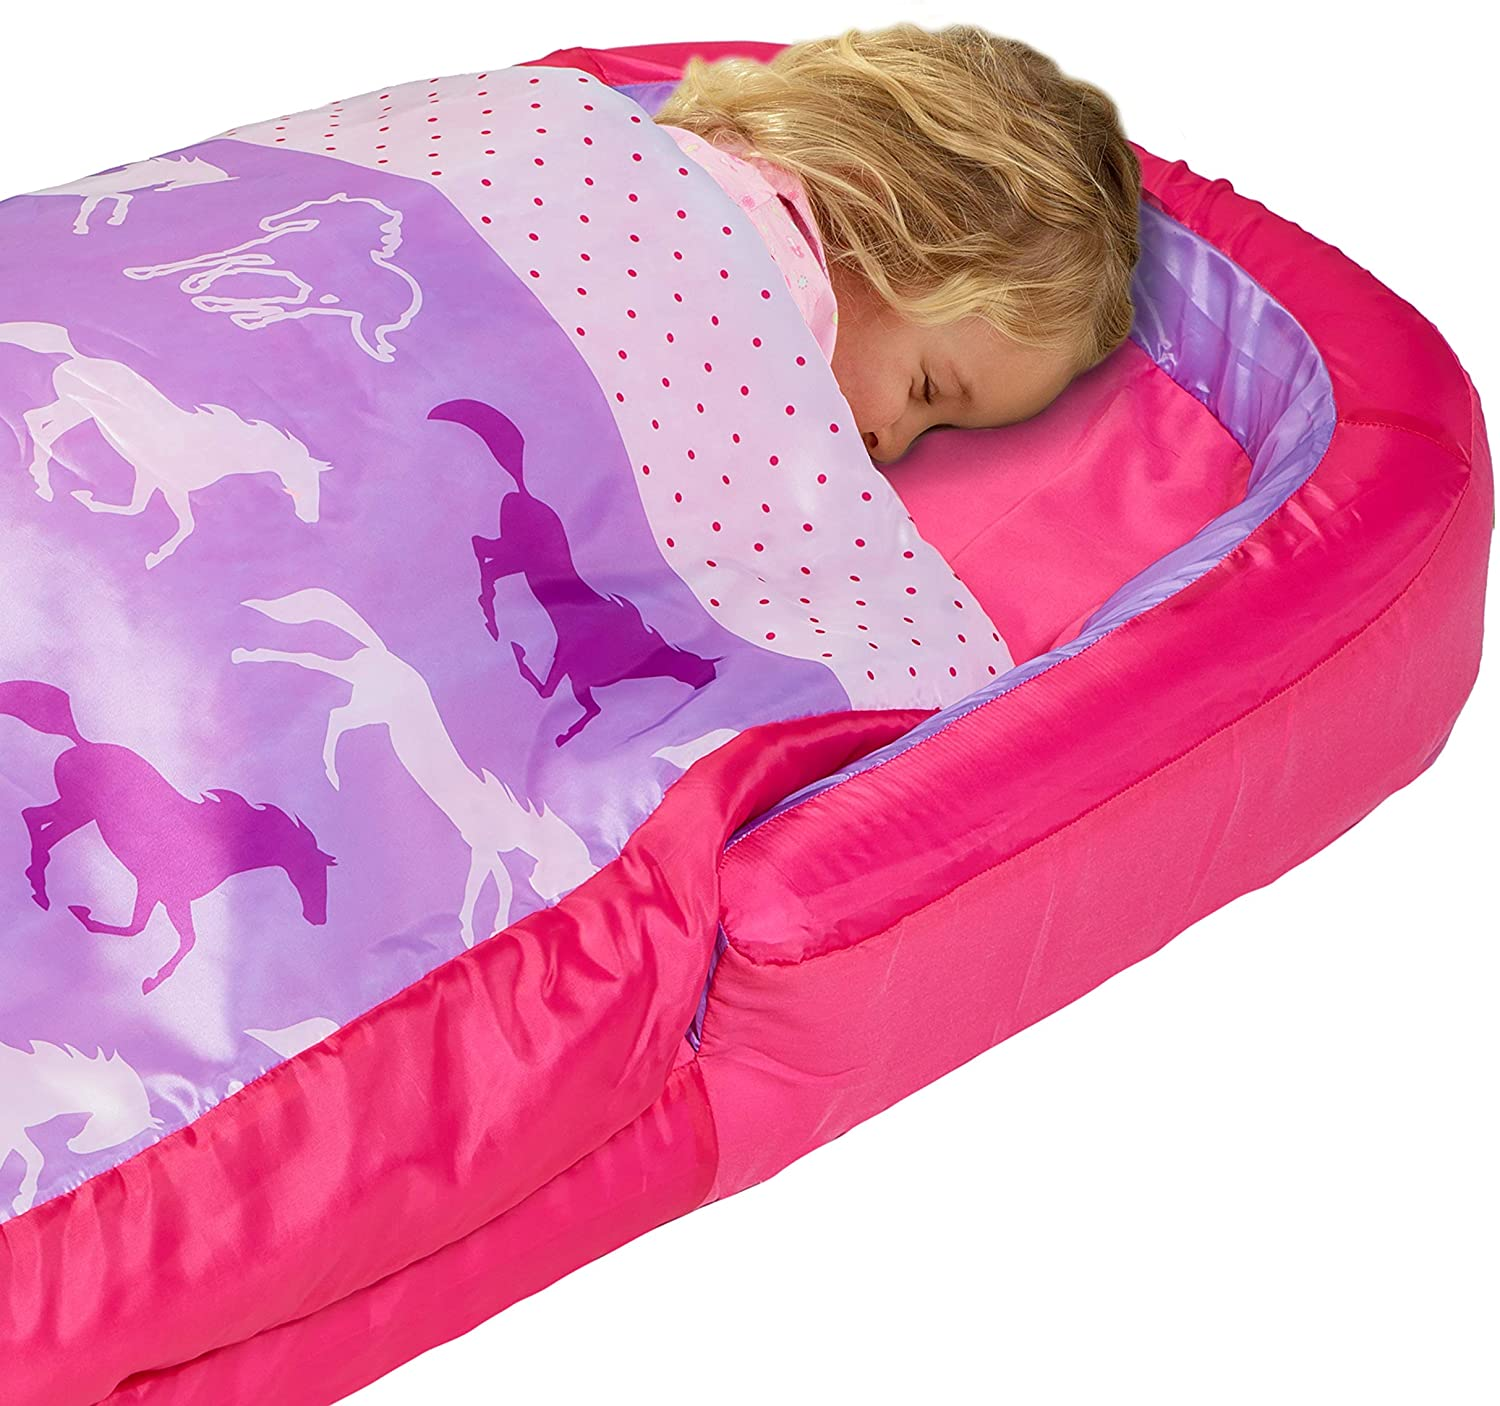 Closeup of Girl asleep in MyFirst ReadyBed with purple horses design